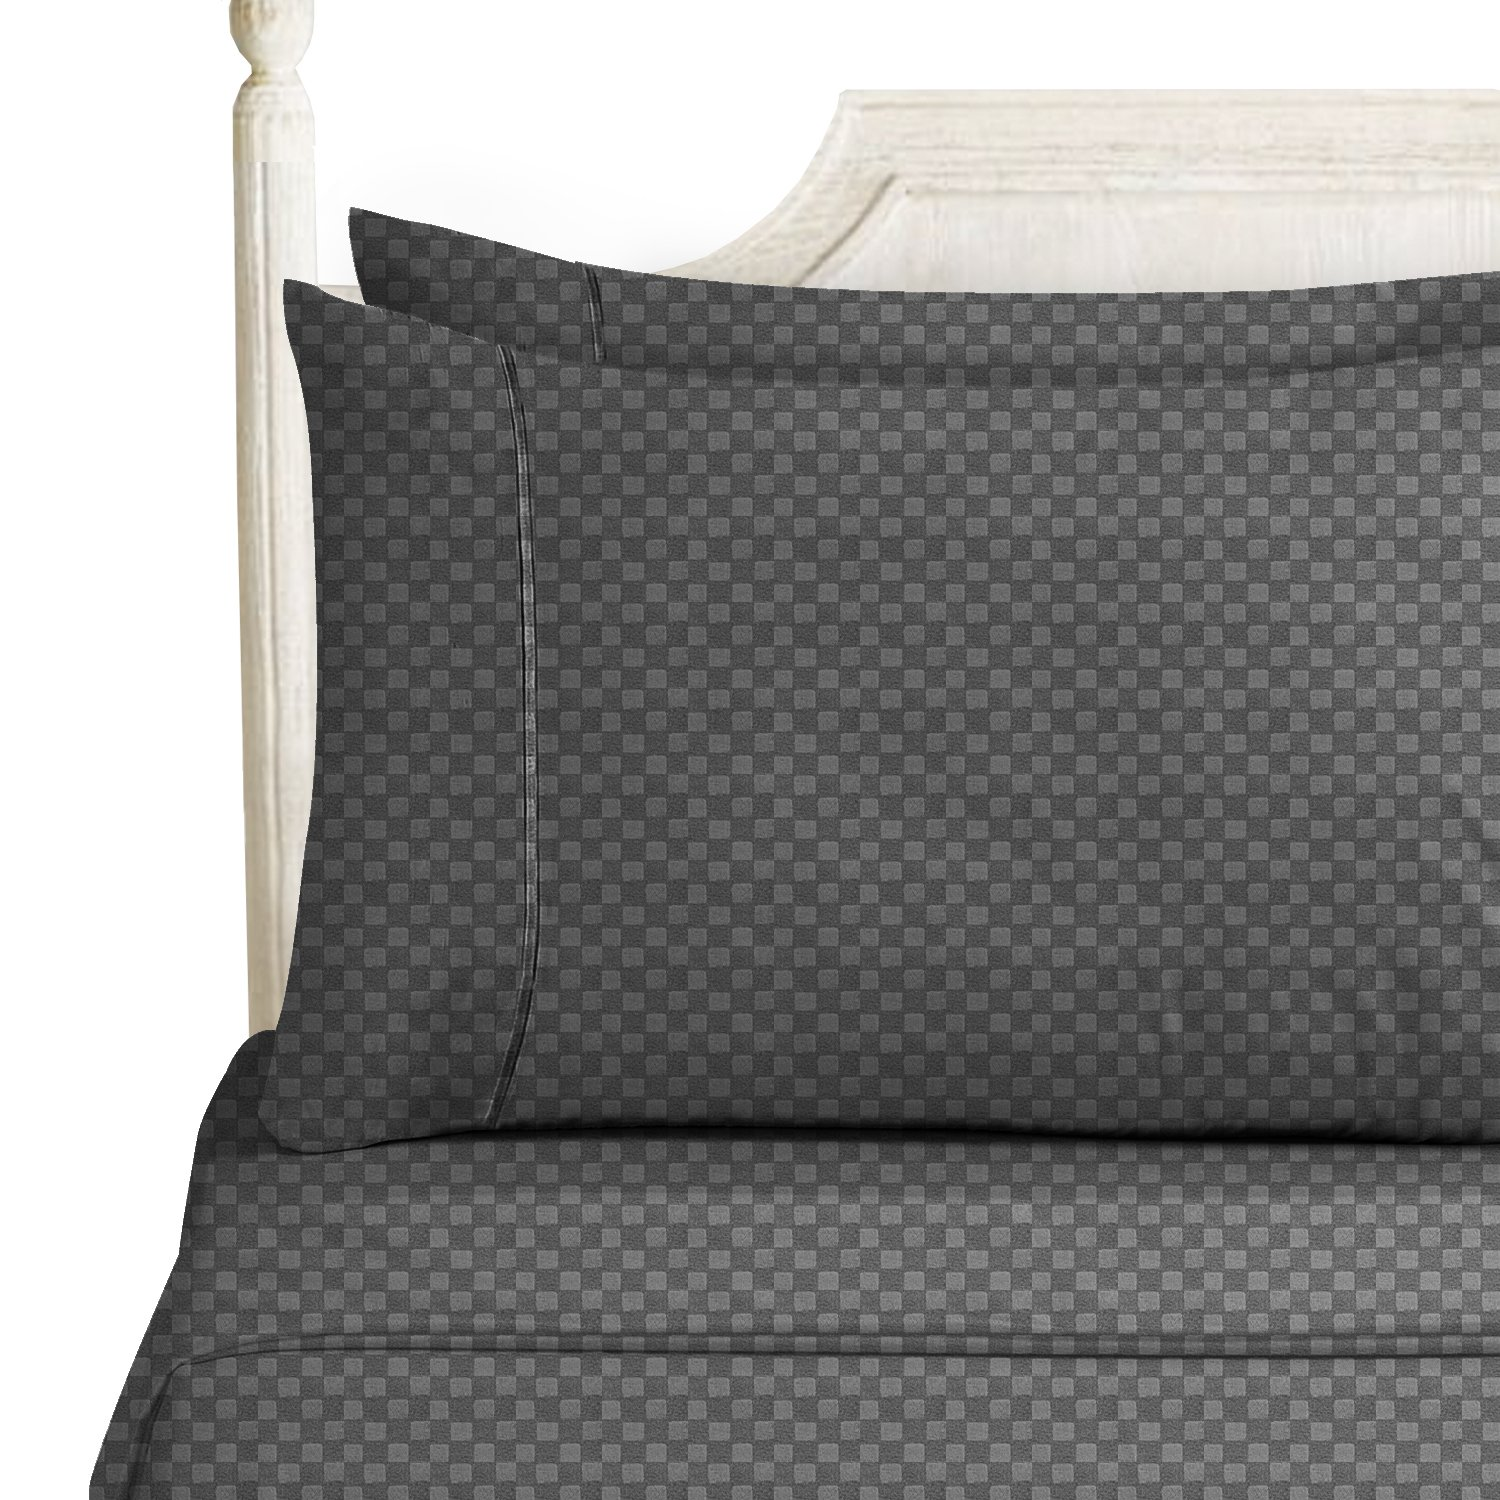 Bed Sheet Bedding Set, King, Charcoal Stone Gray